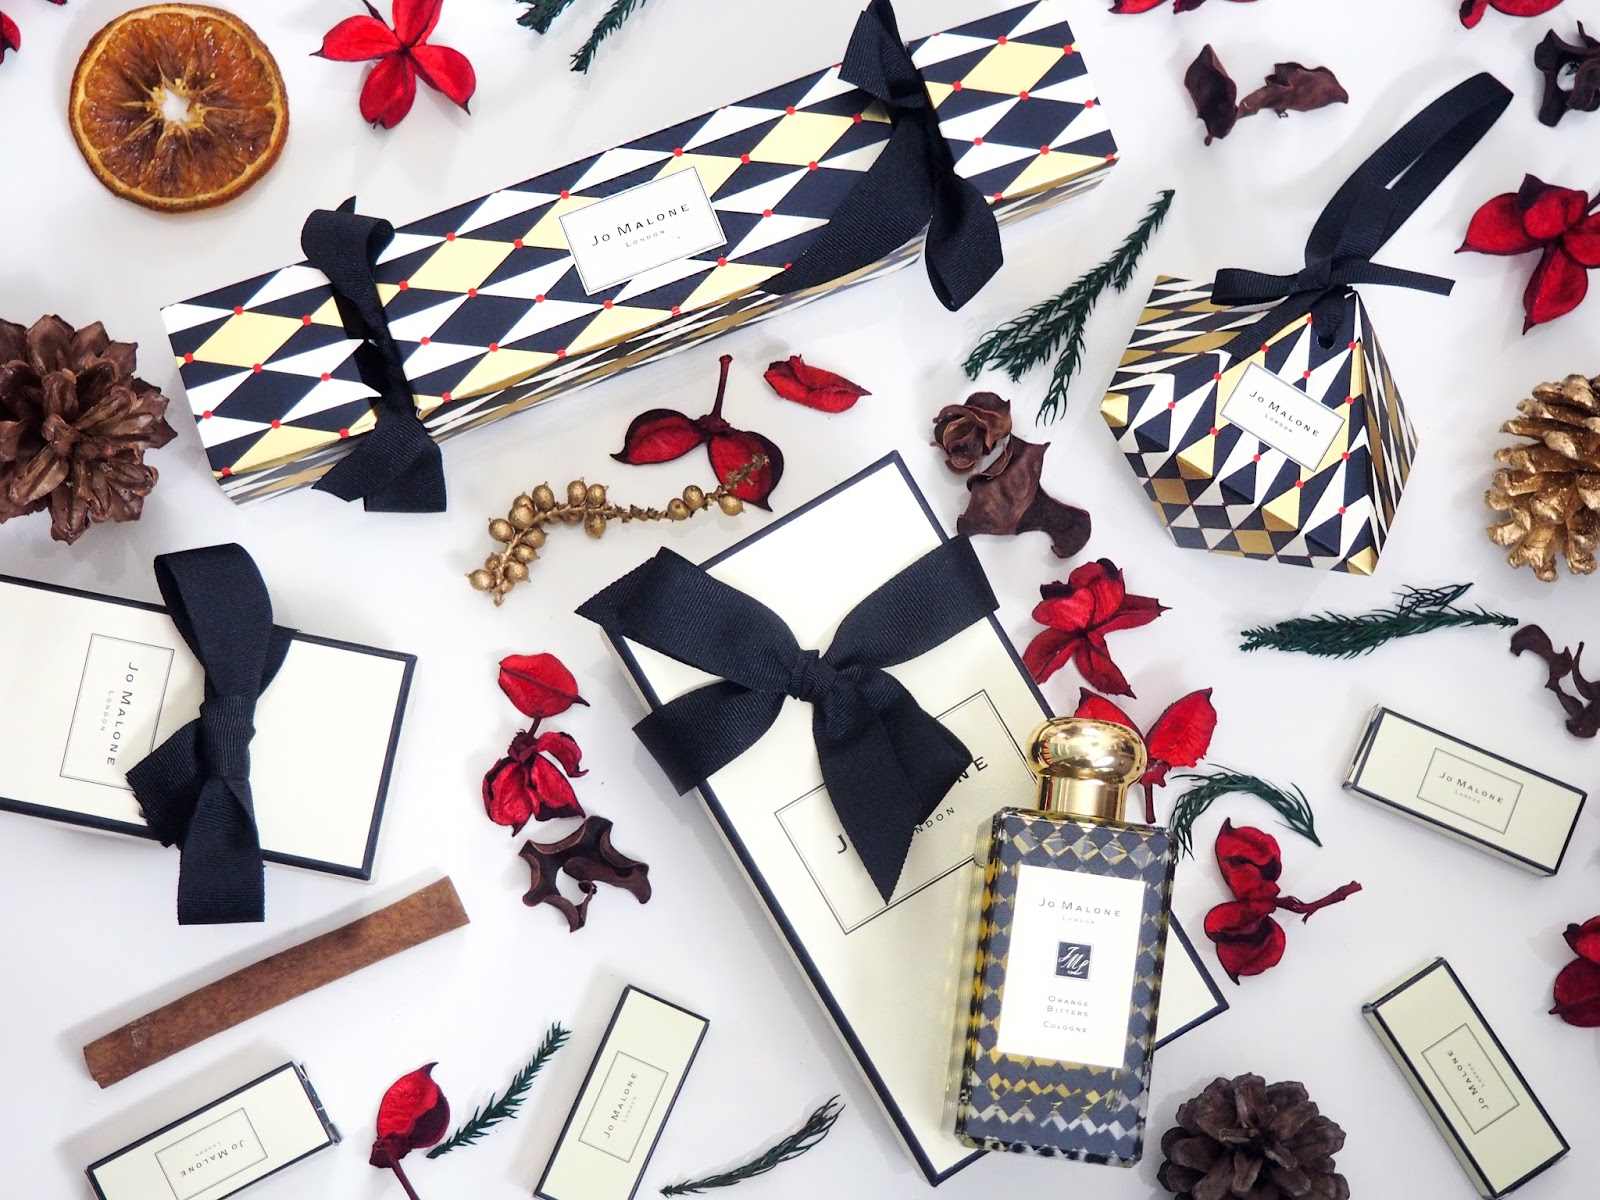 CHRISTMAS WITH JO MALONE  THEATRE OF CHRISTMAS  AliciaAmyJones